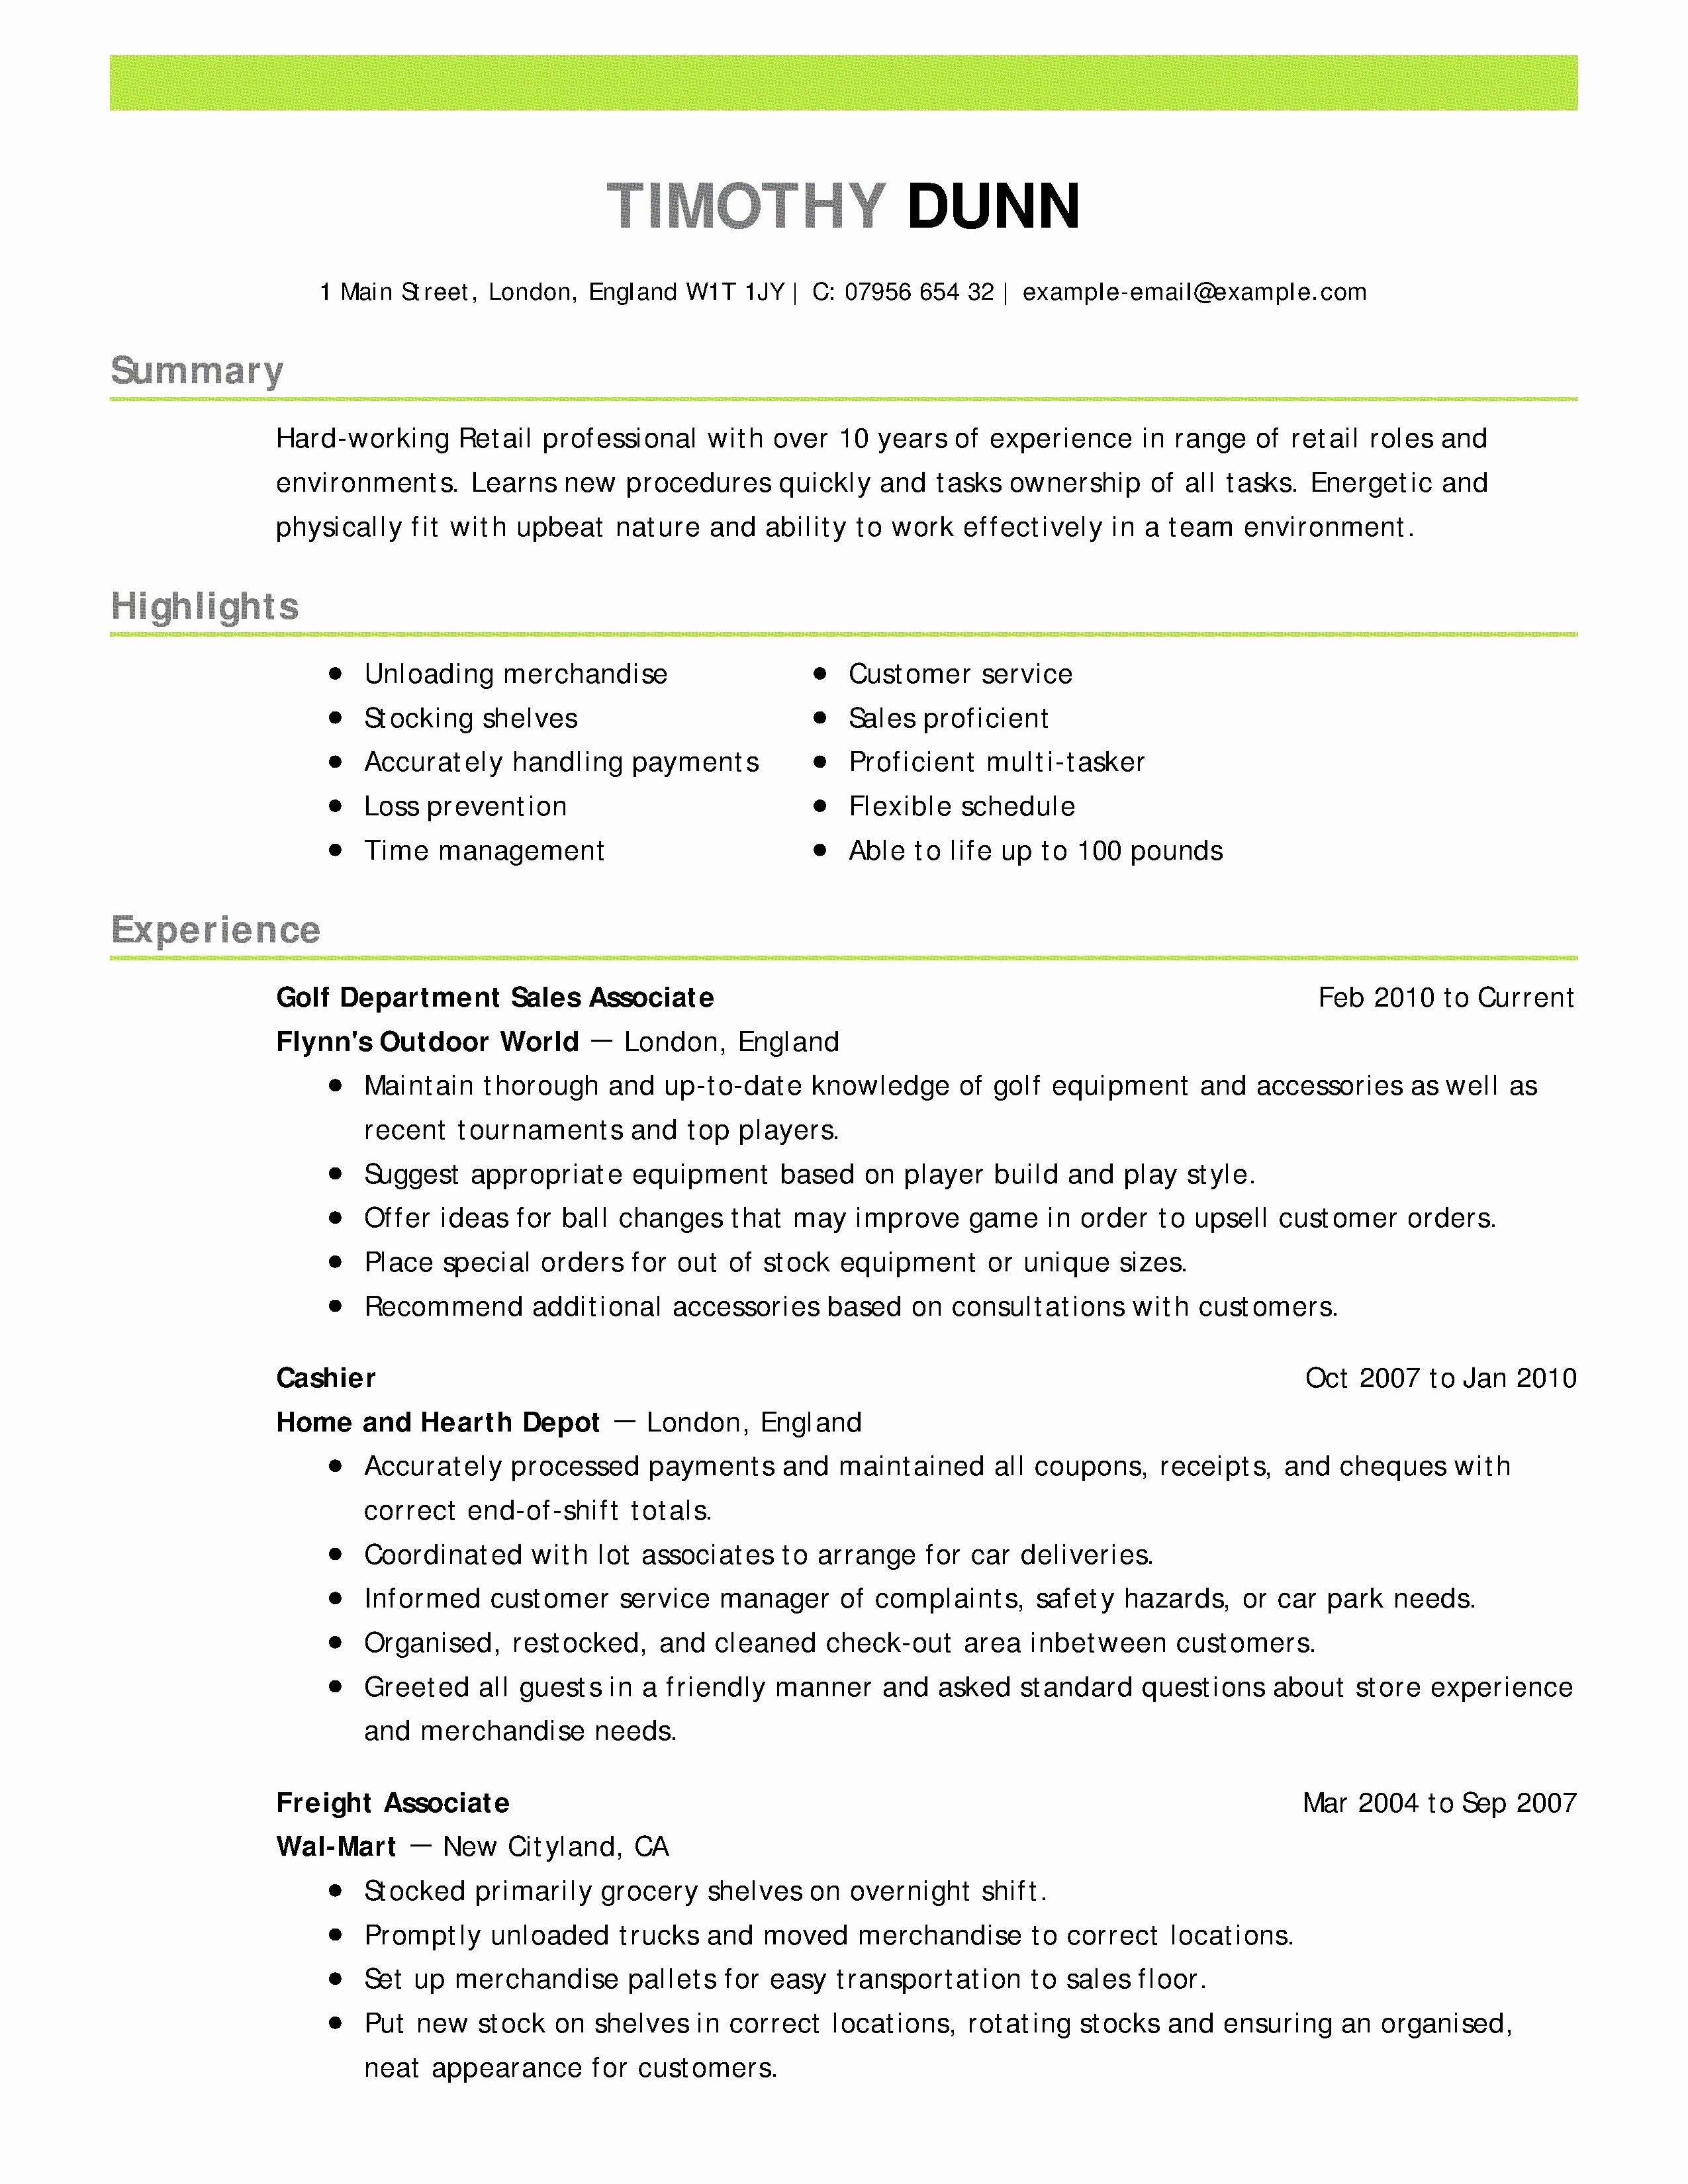 8 Resume Objective For Career Change Examples Collection Resume